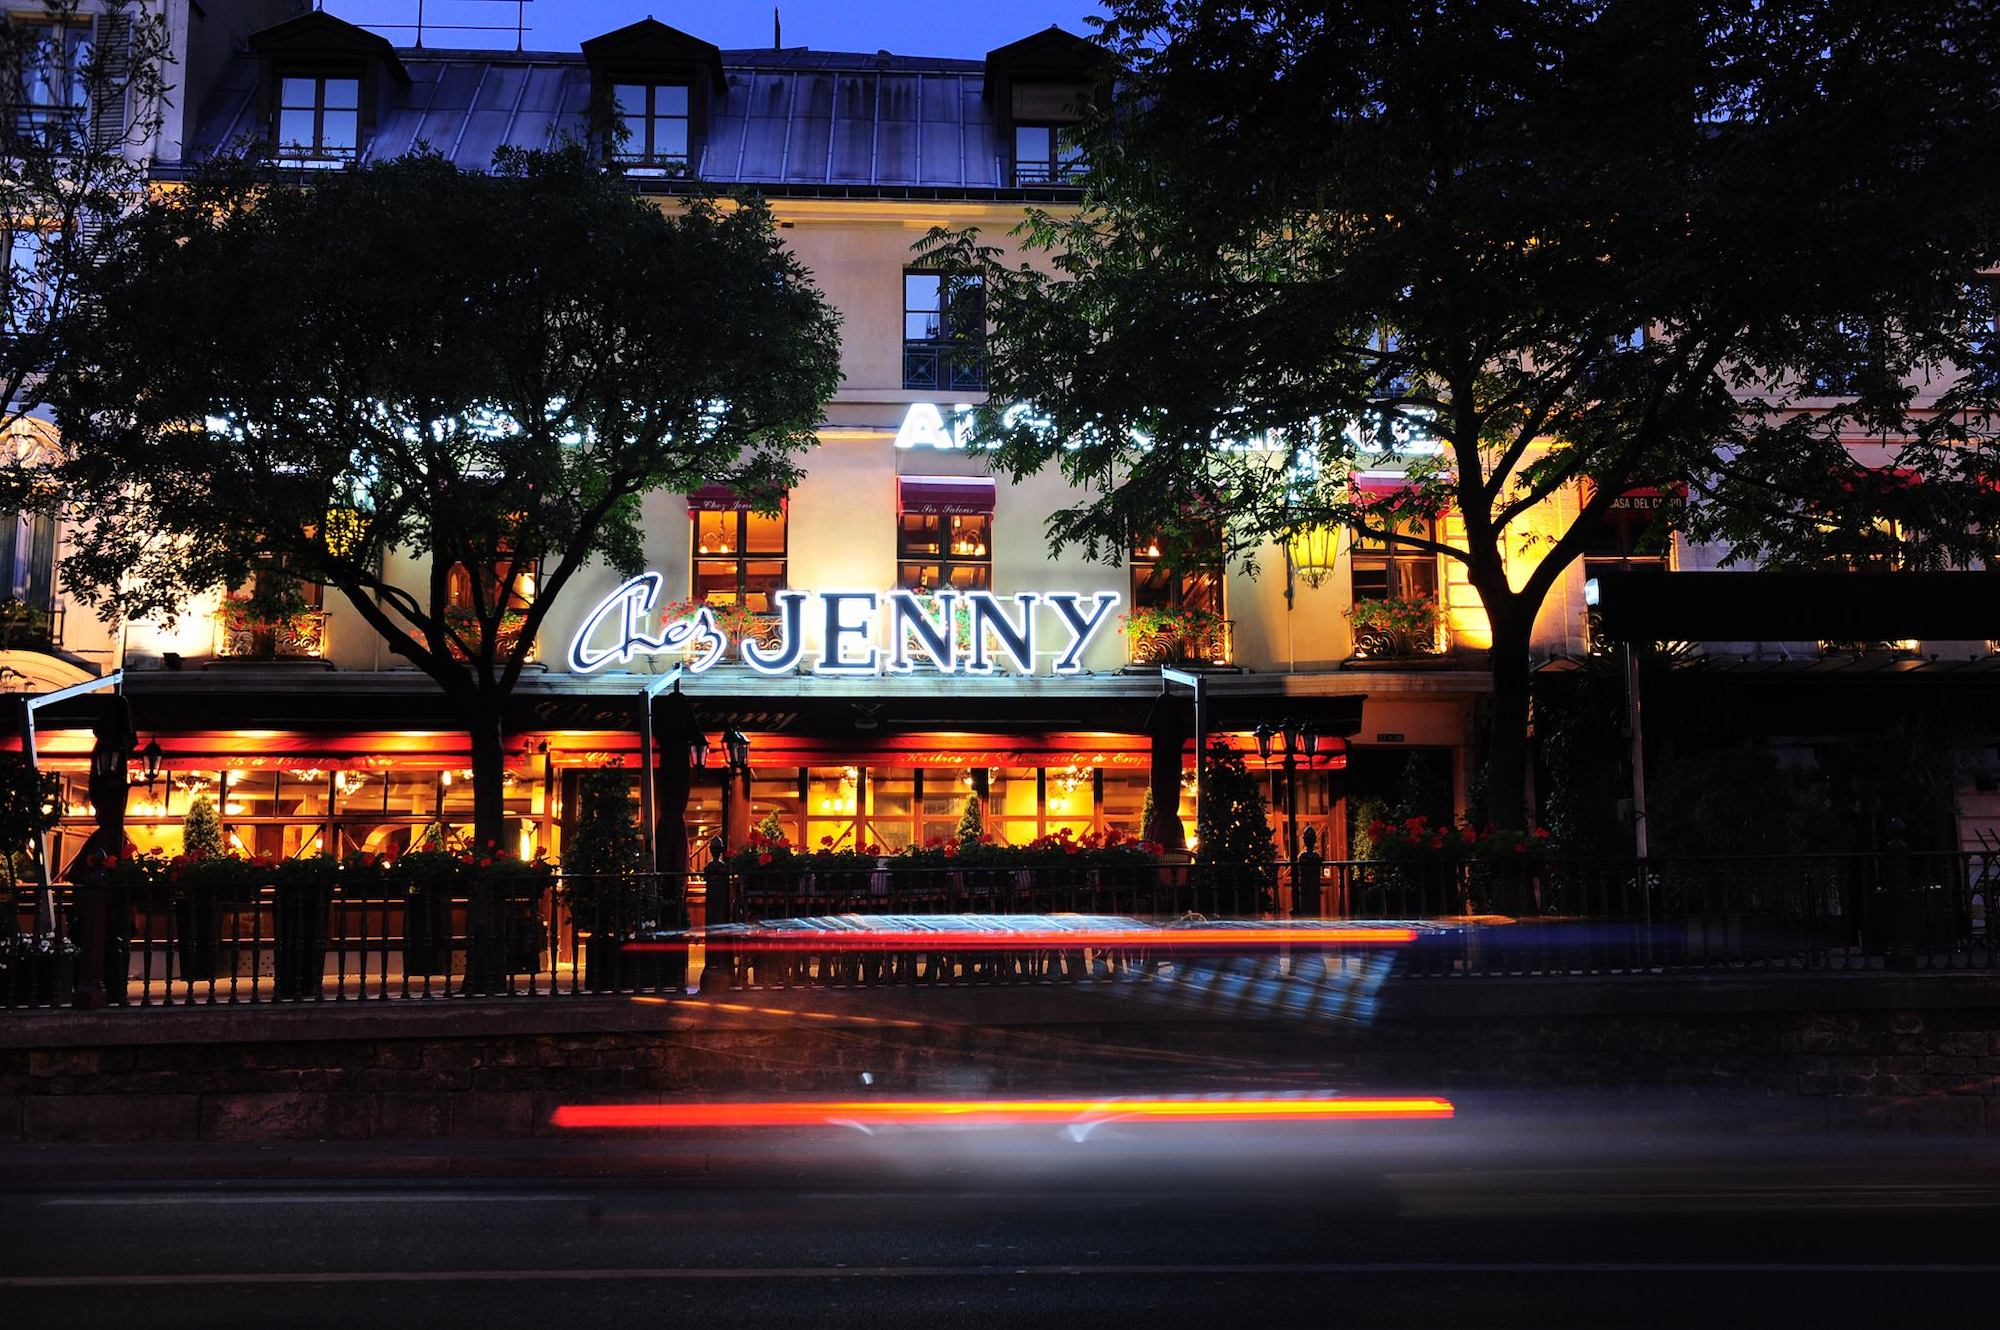 The exterior of the restaurant Chez Jenny in Paris at night time, with a large white neon sign saying Chez Jenny and streaks of light in front from a passing car.